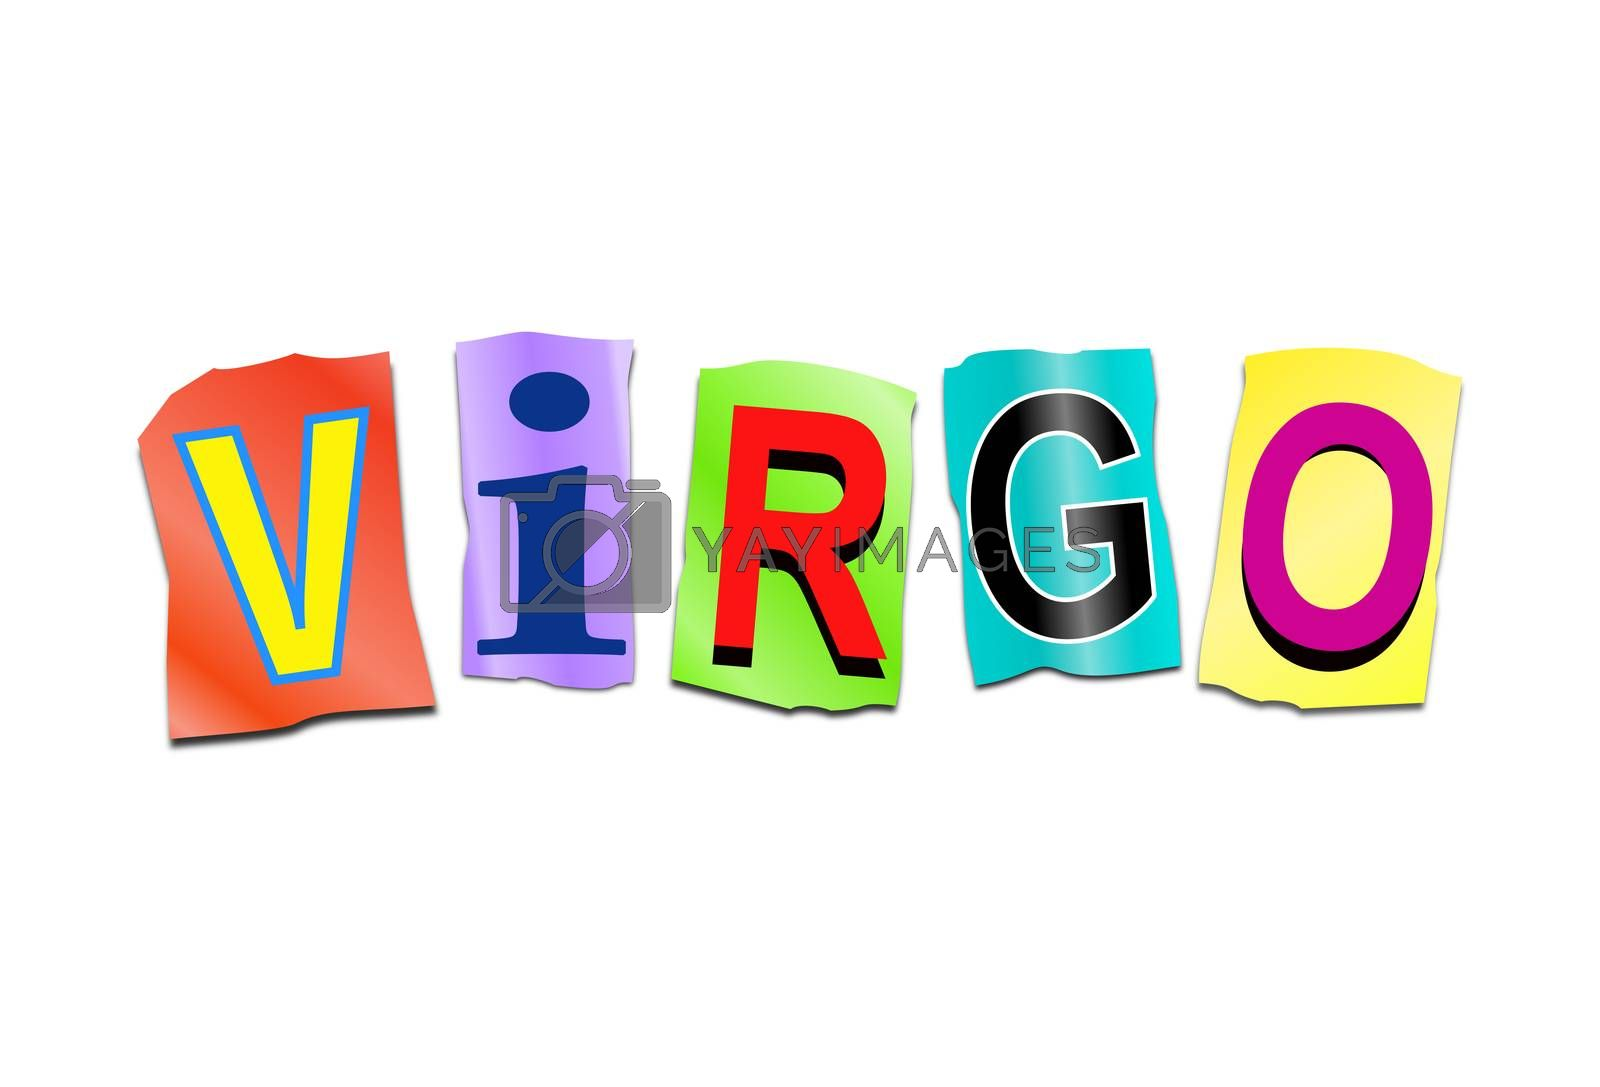 Illustration depicting a set of cut out printed letters arranged to form the word virgo.